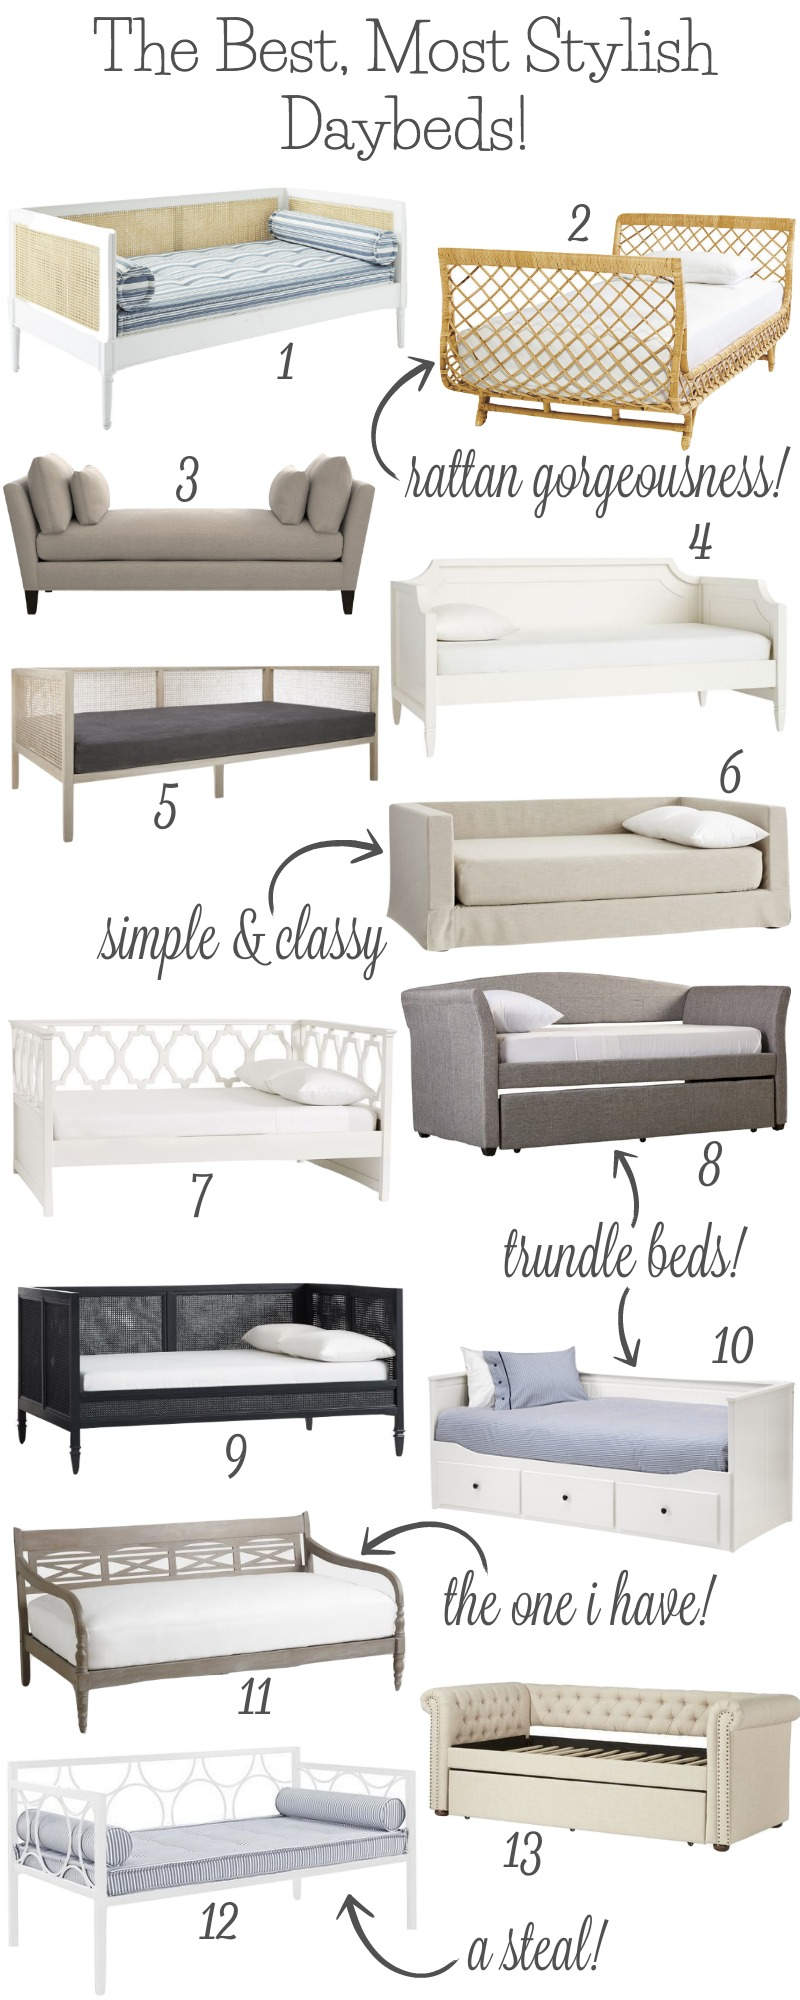 so many stylish twin daybed options love the ones with trundles an extra spot